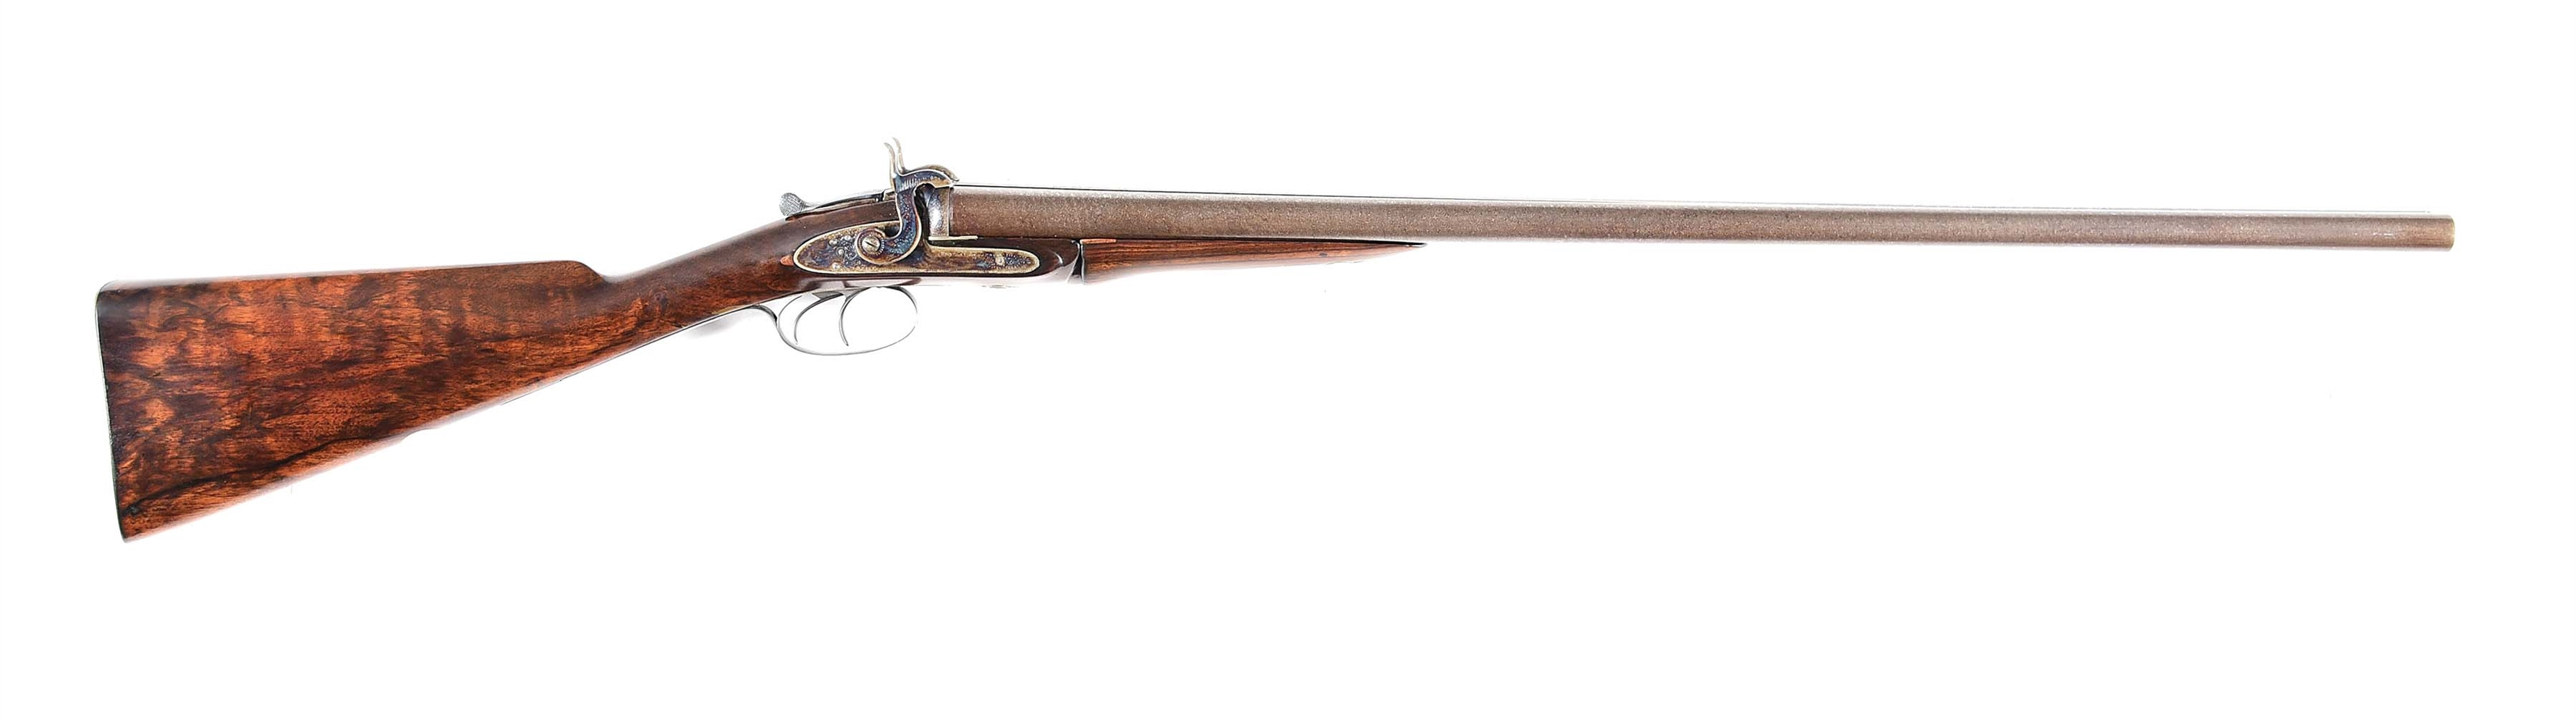 (A) WESTLEY RICHARDS 1871 PATENT SIDE BY SIDE HAMMER FIRED 12 BORE SHOTGUN, CONVERTED FROM PINFIRE.